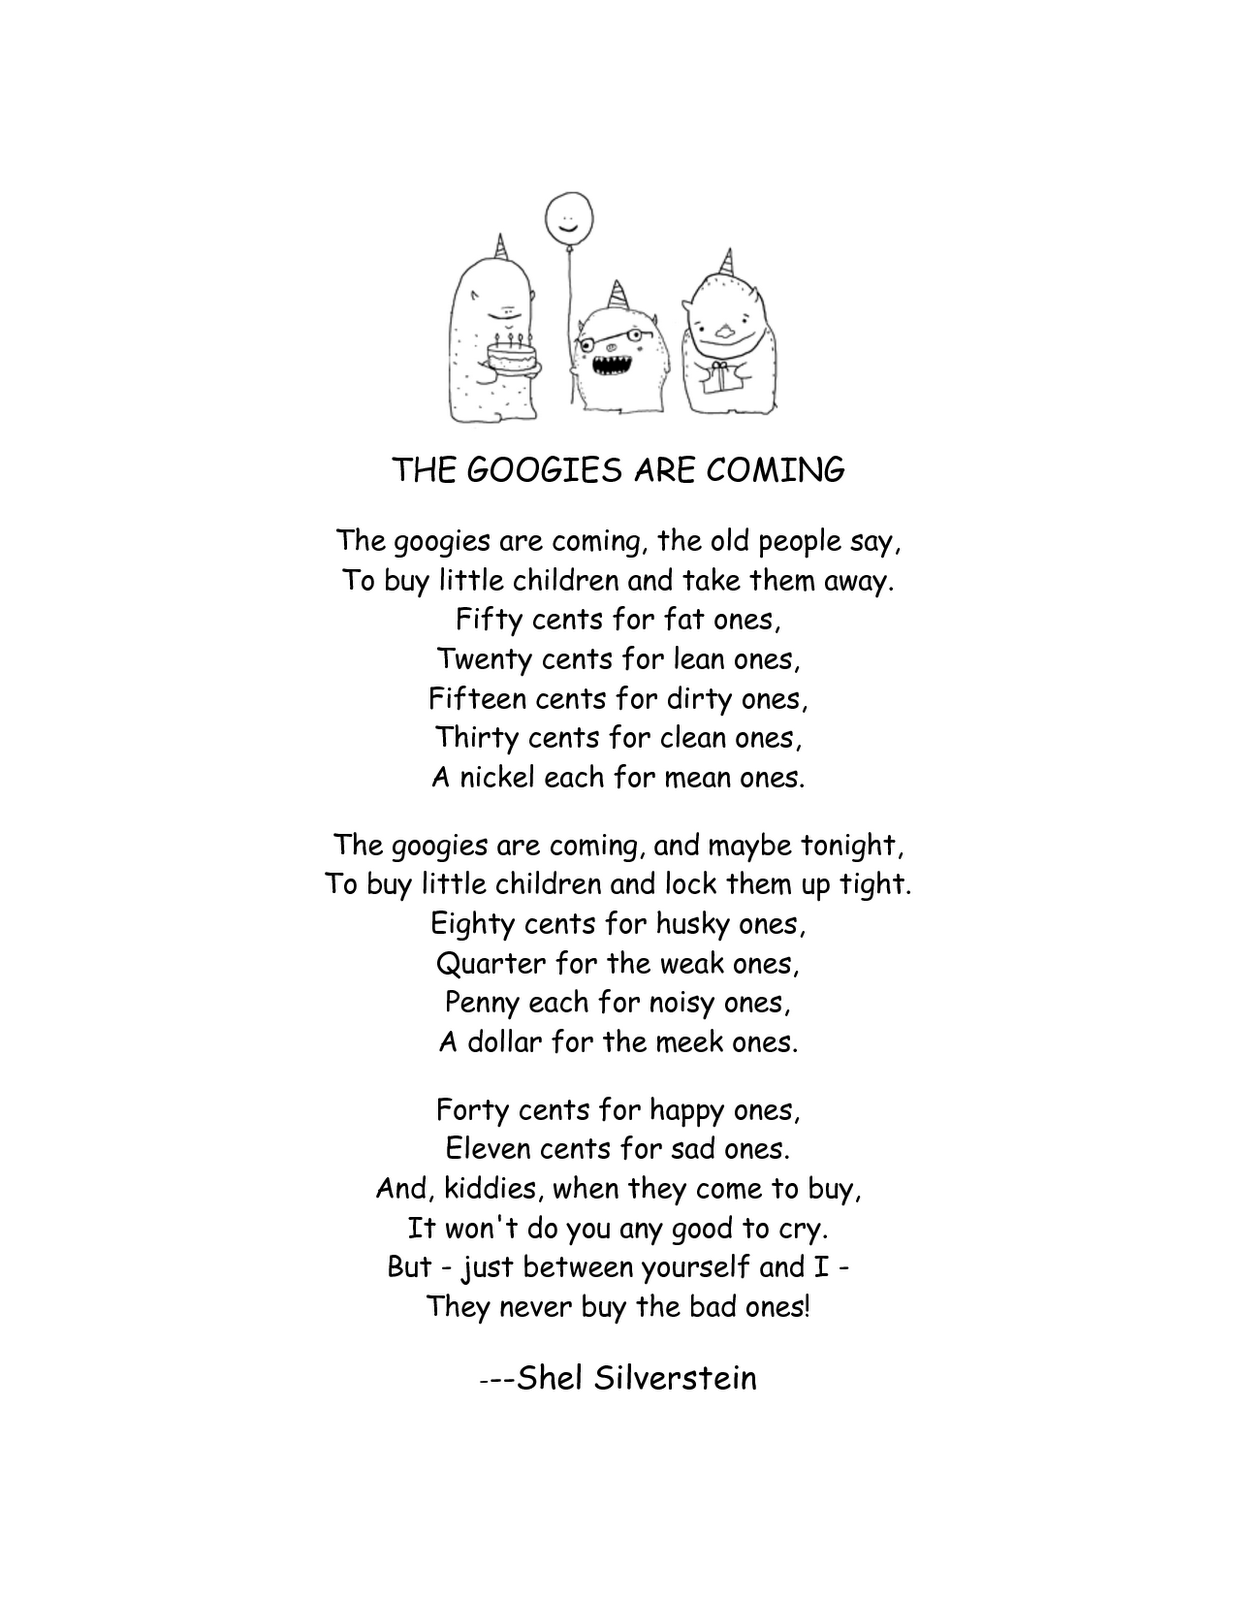 Finding Alliteration In Poems By Shel Silverstein Is